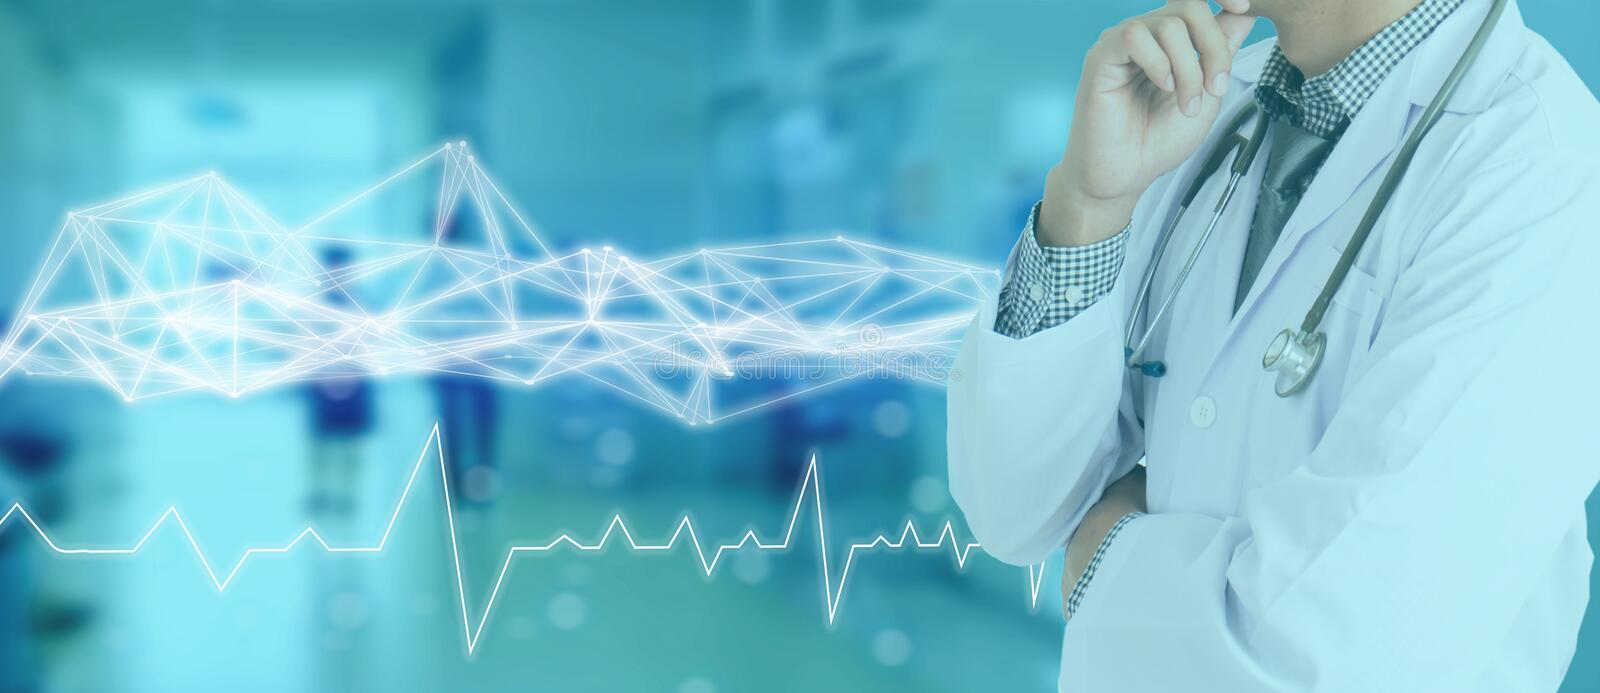 Technology network in medical medicine concept, icon medical network connection with modern screen virtual interface with wire mes stock image